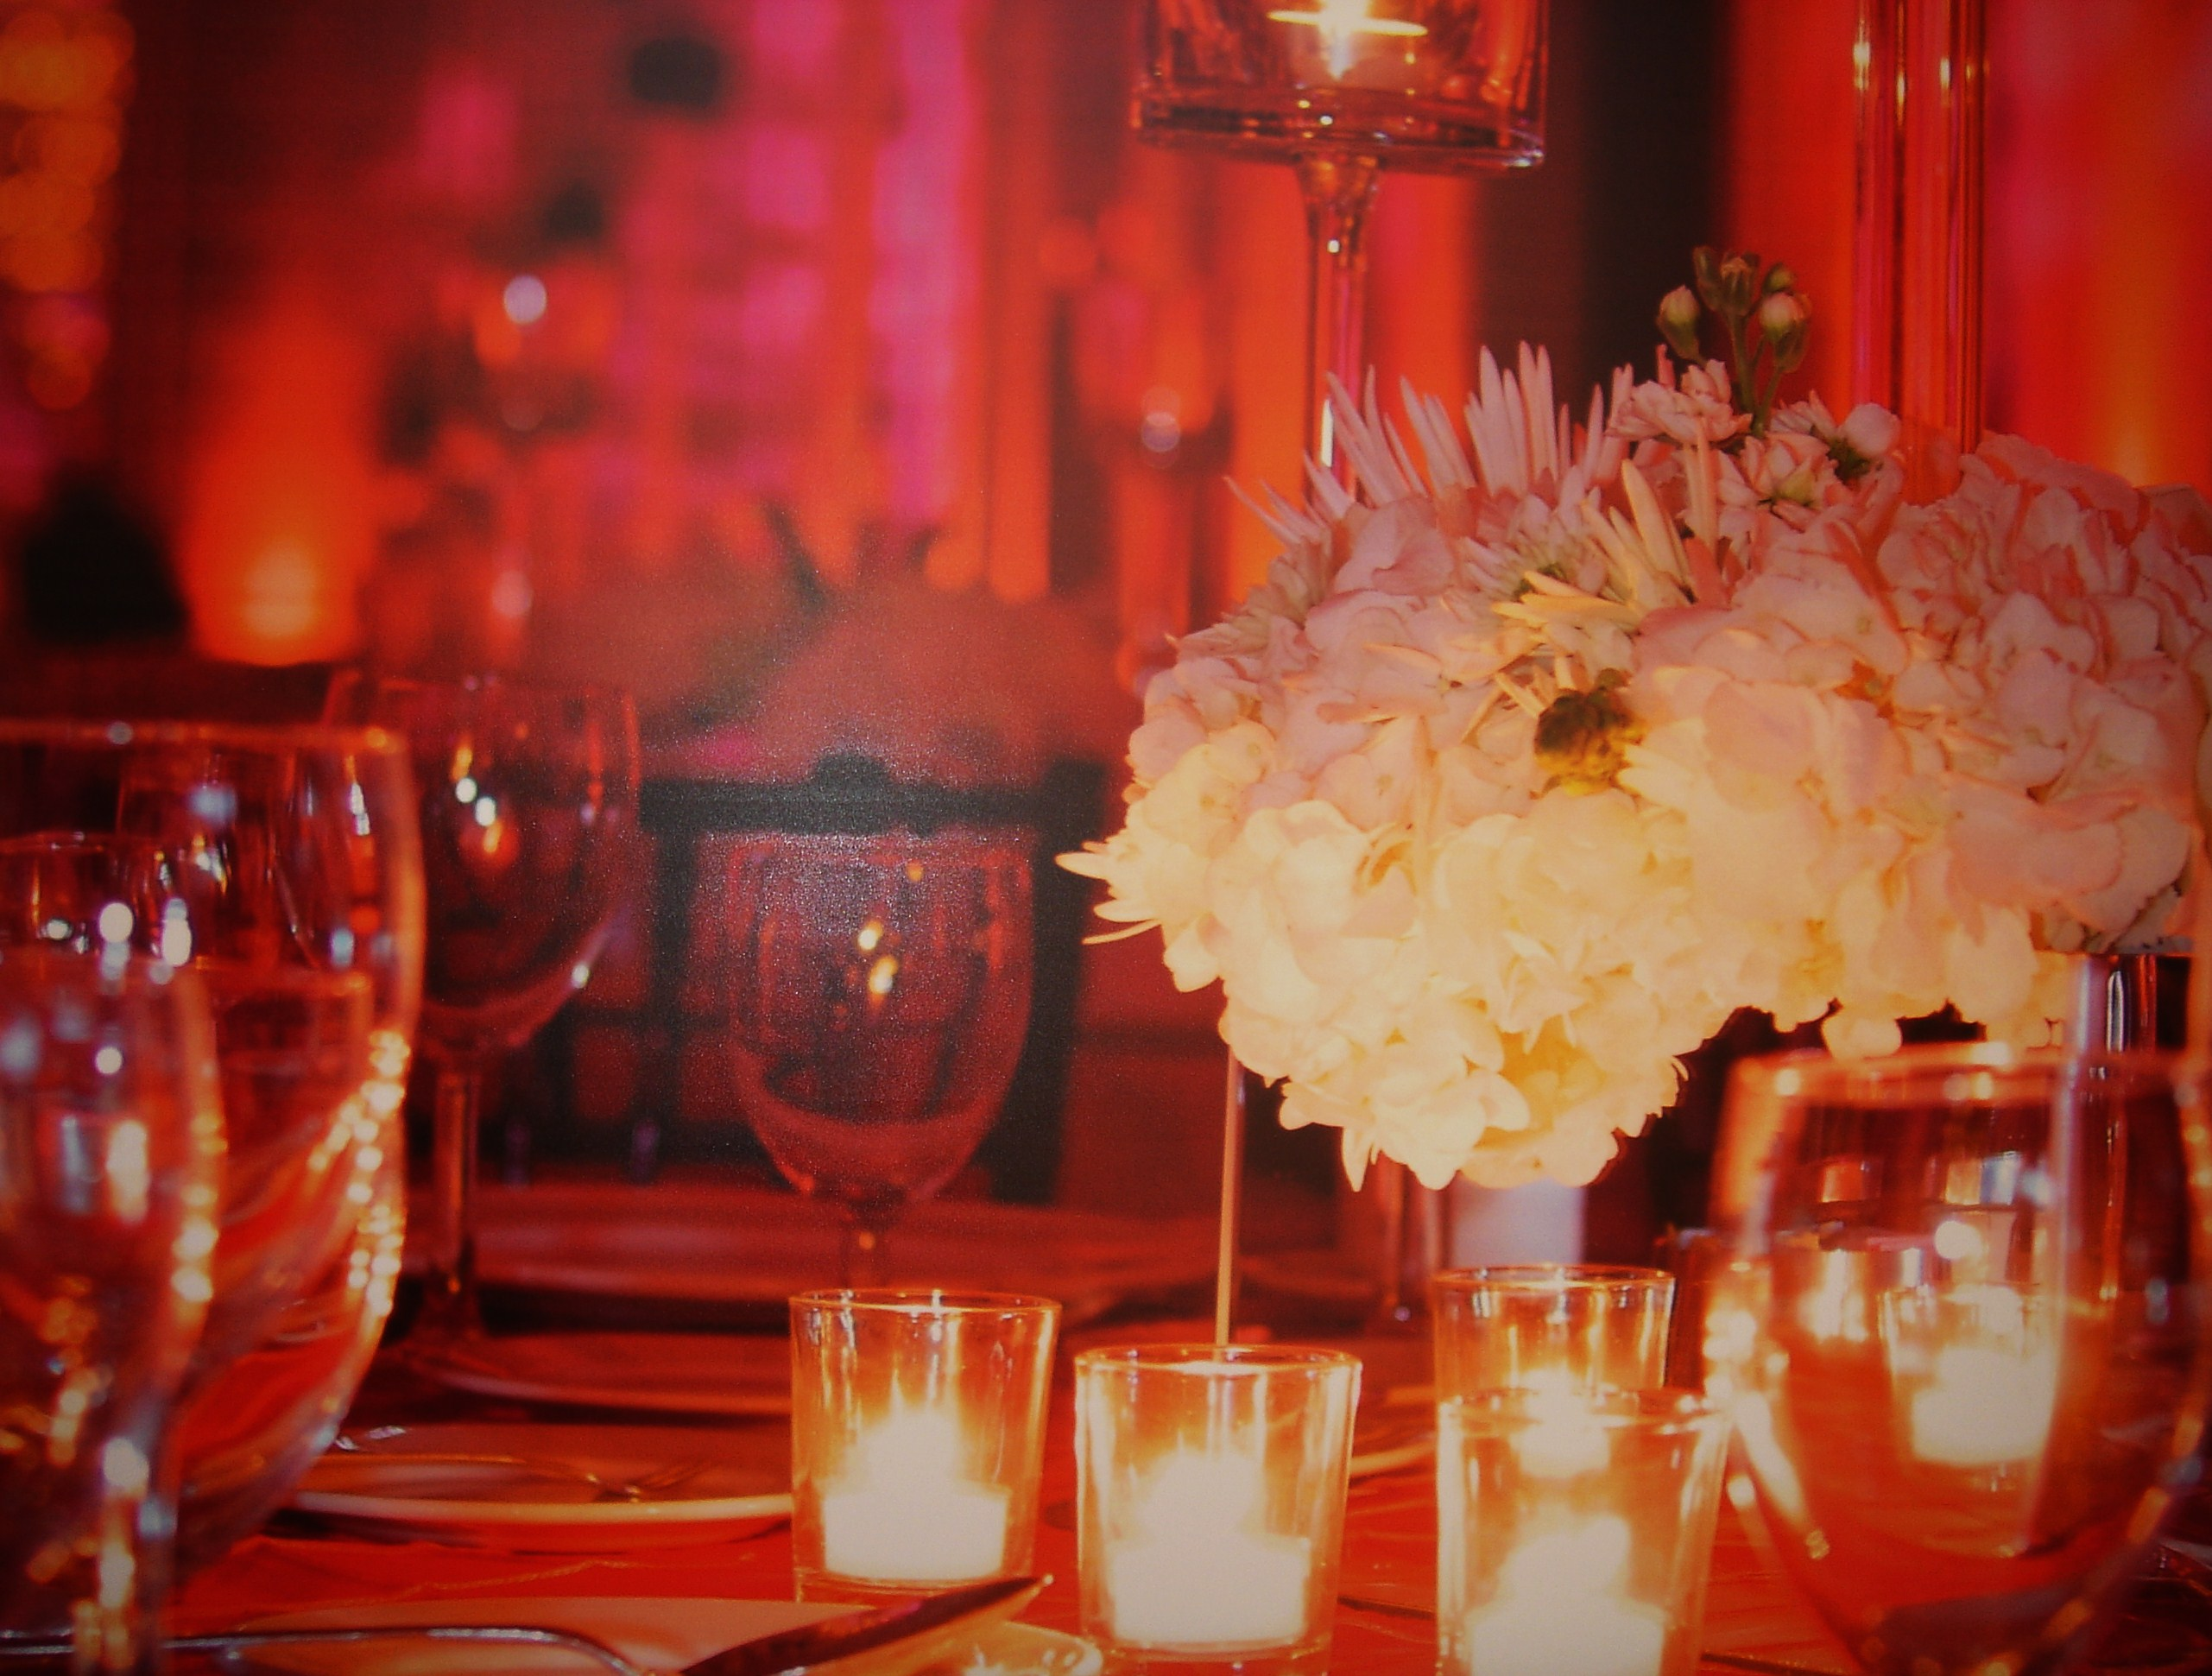 Amazing We use Mood boards to make your event full of life! We create emotions  2562 x 1941 · 728 kB · jpeg